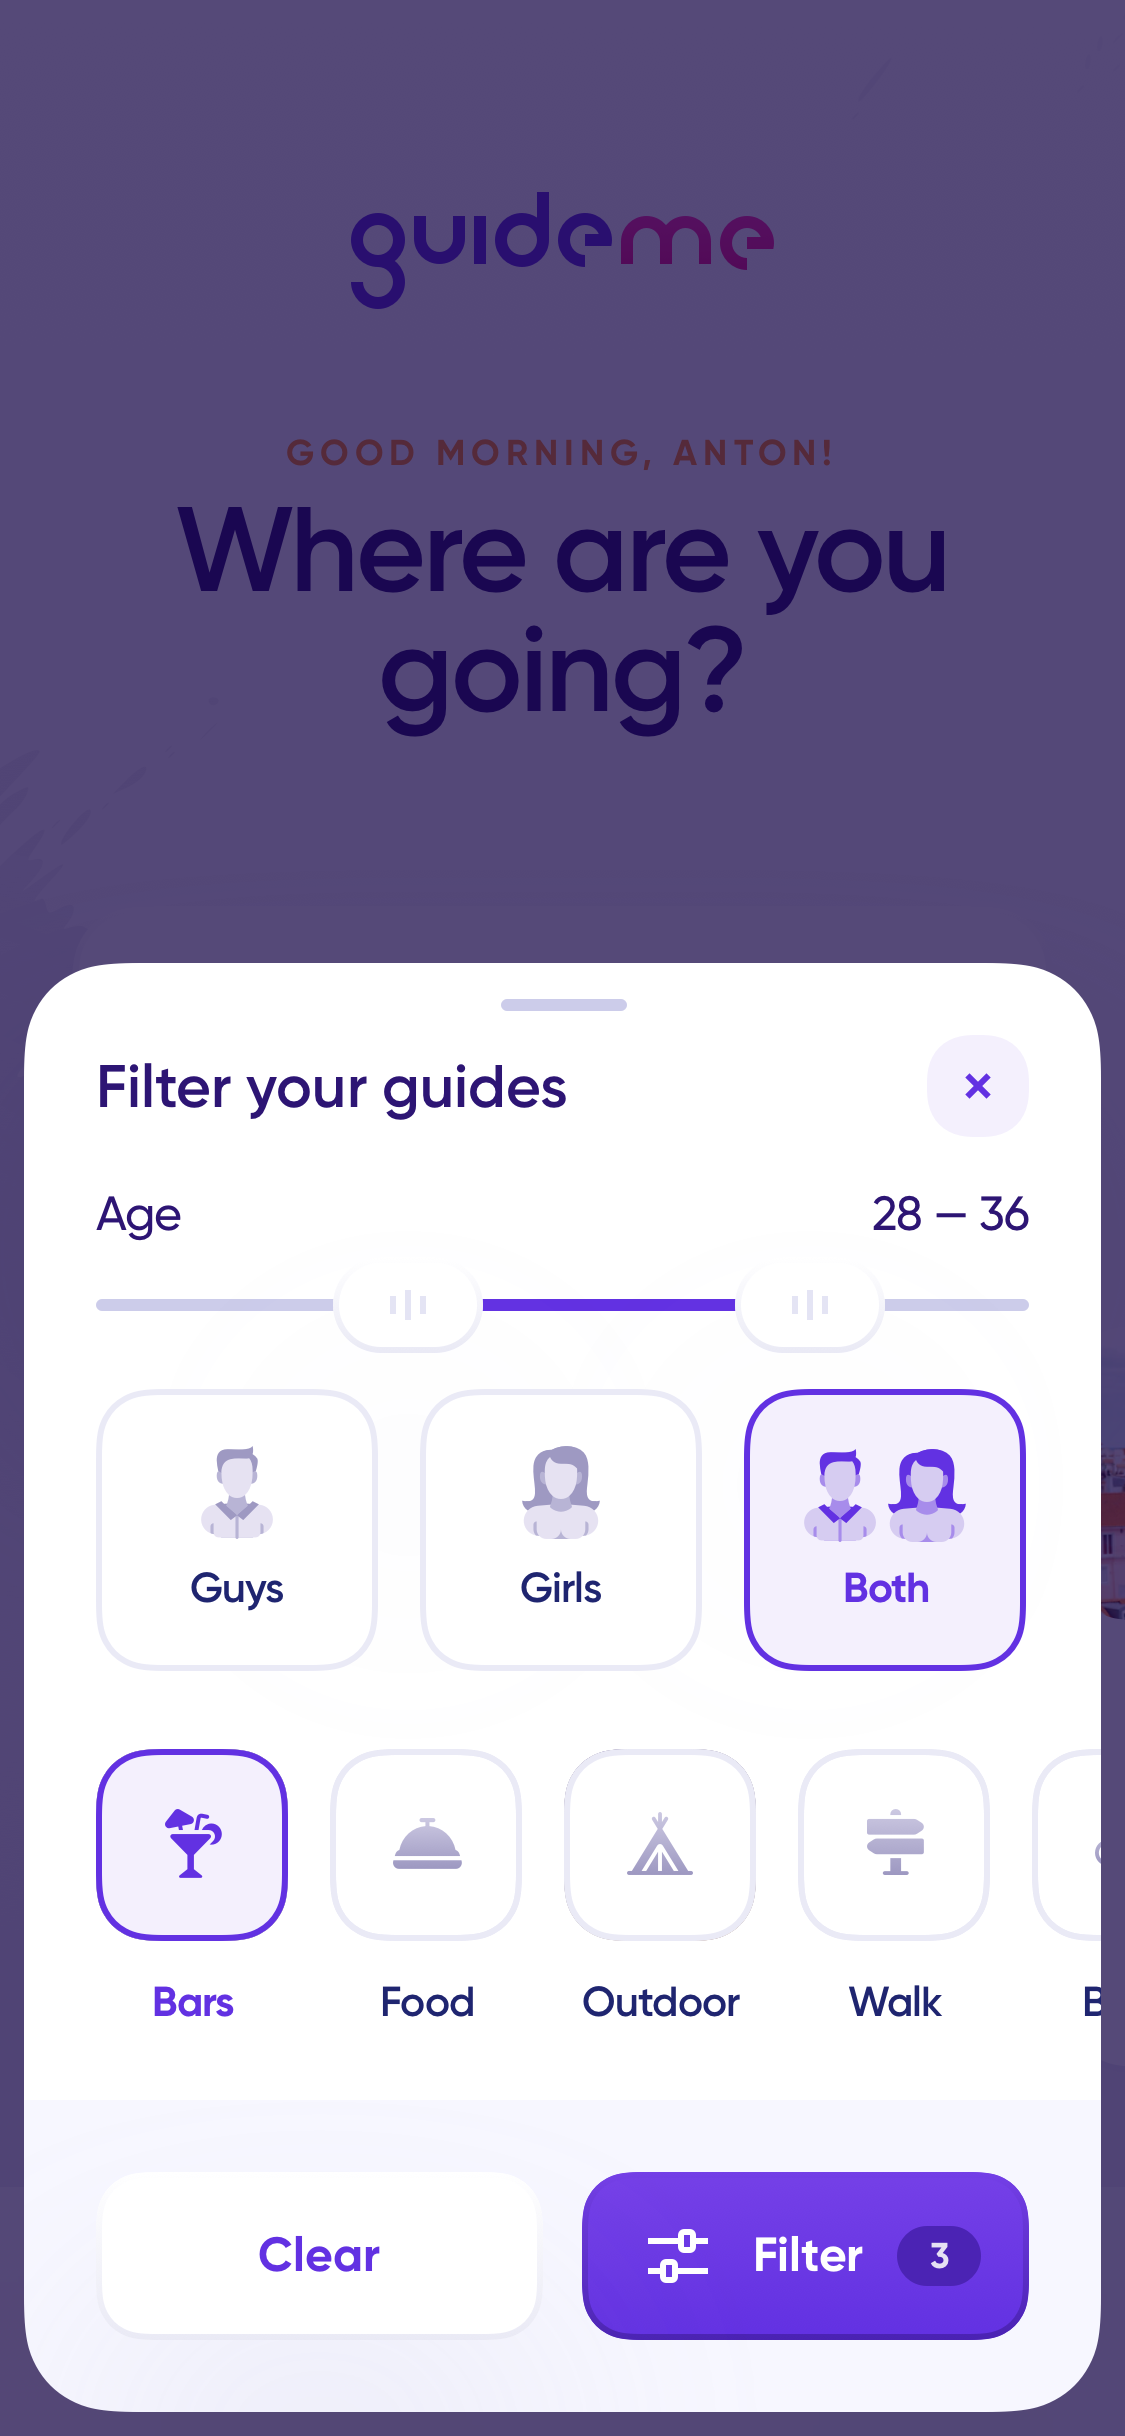 Guideme filters